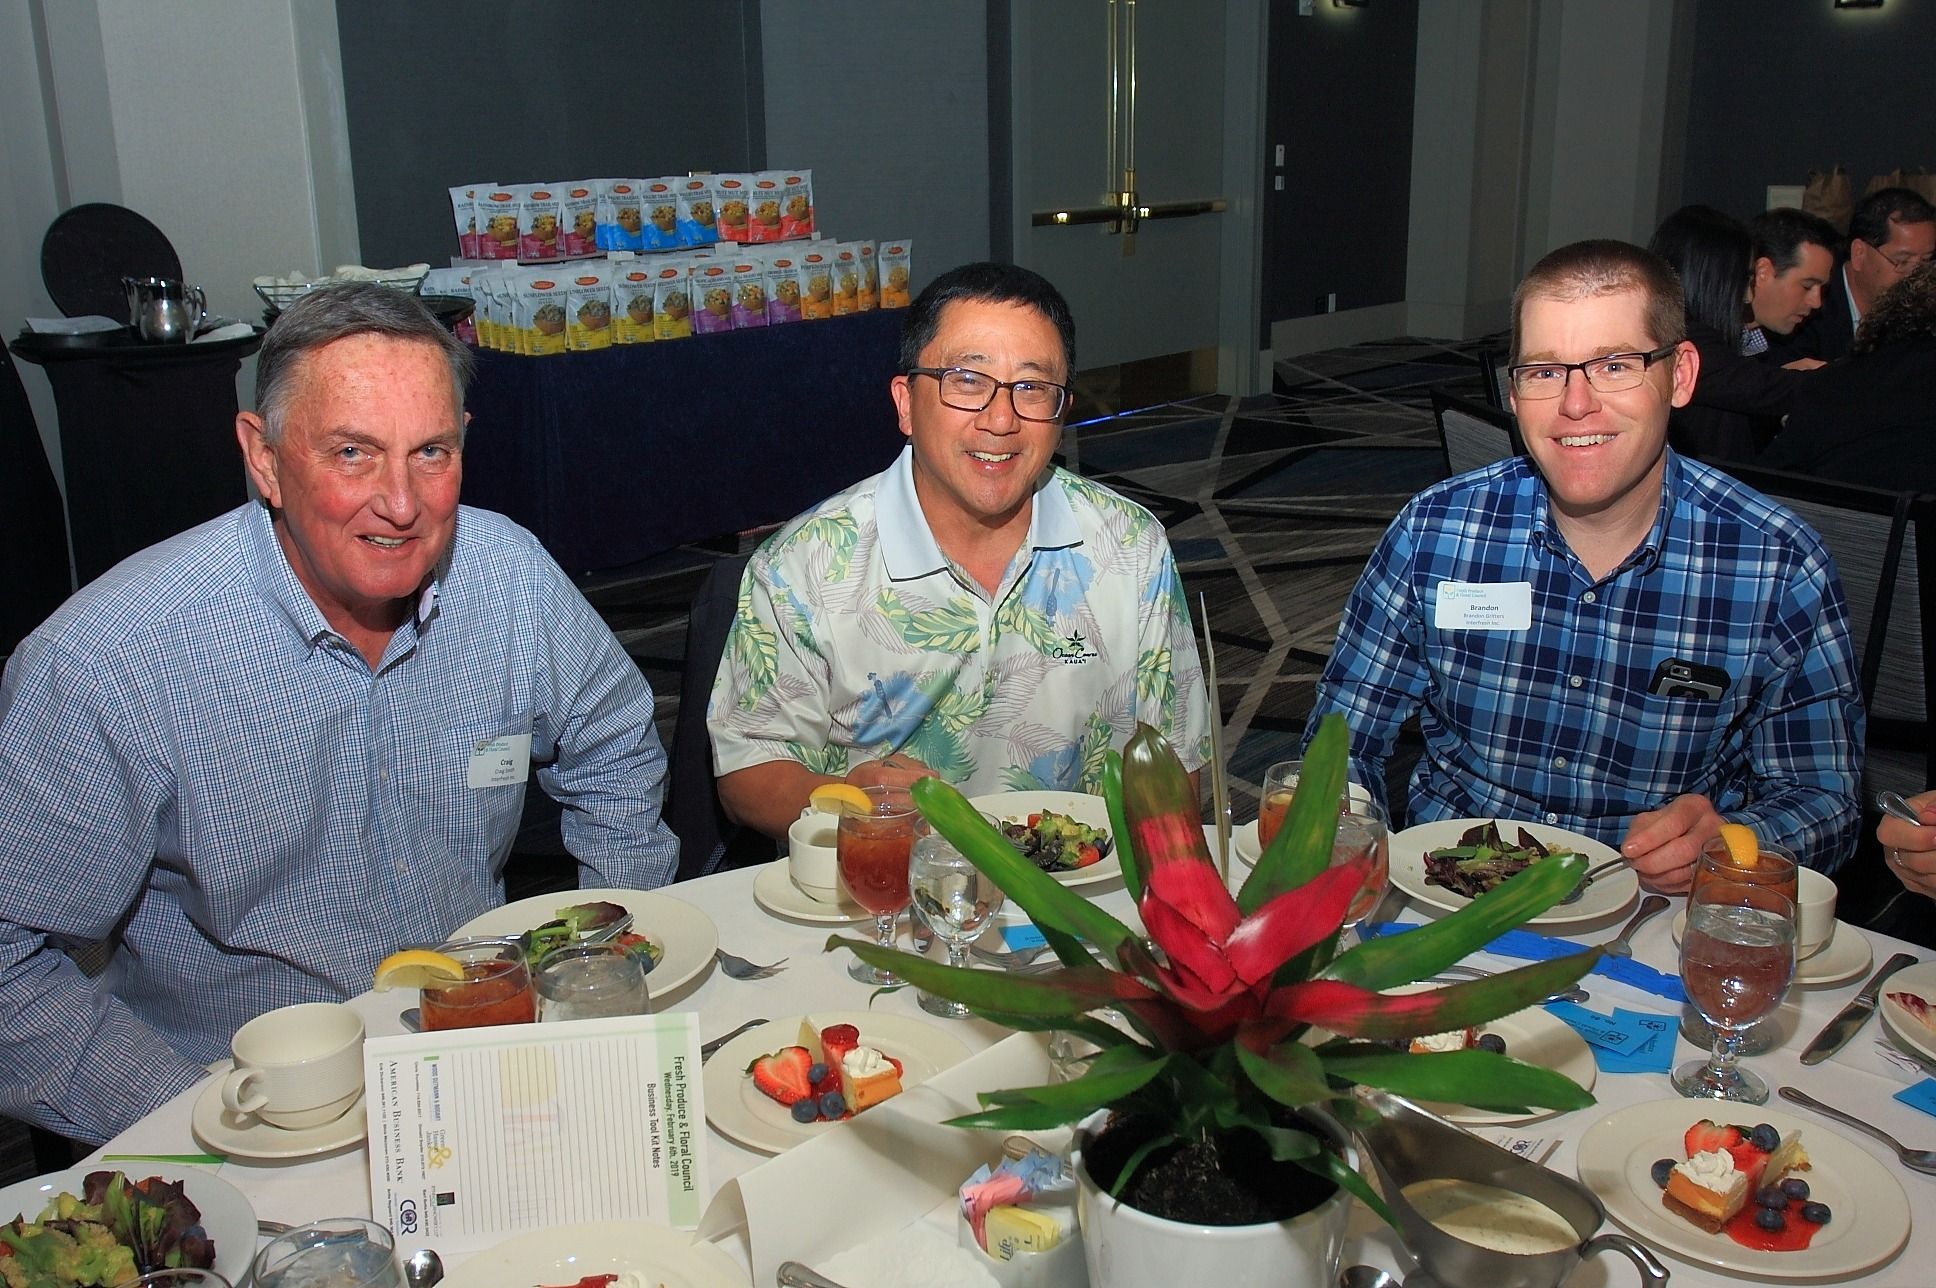 Randy Akahoshi of 4Earth Farms (center) with Craig Smith and Brandon Gritters of InterFresh